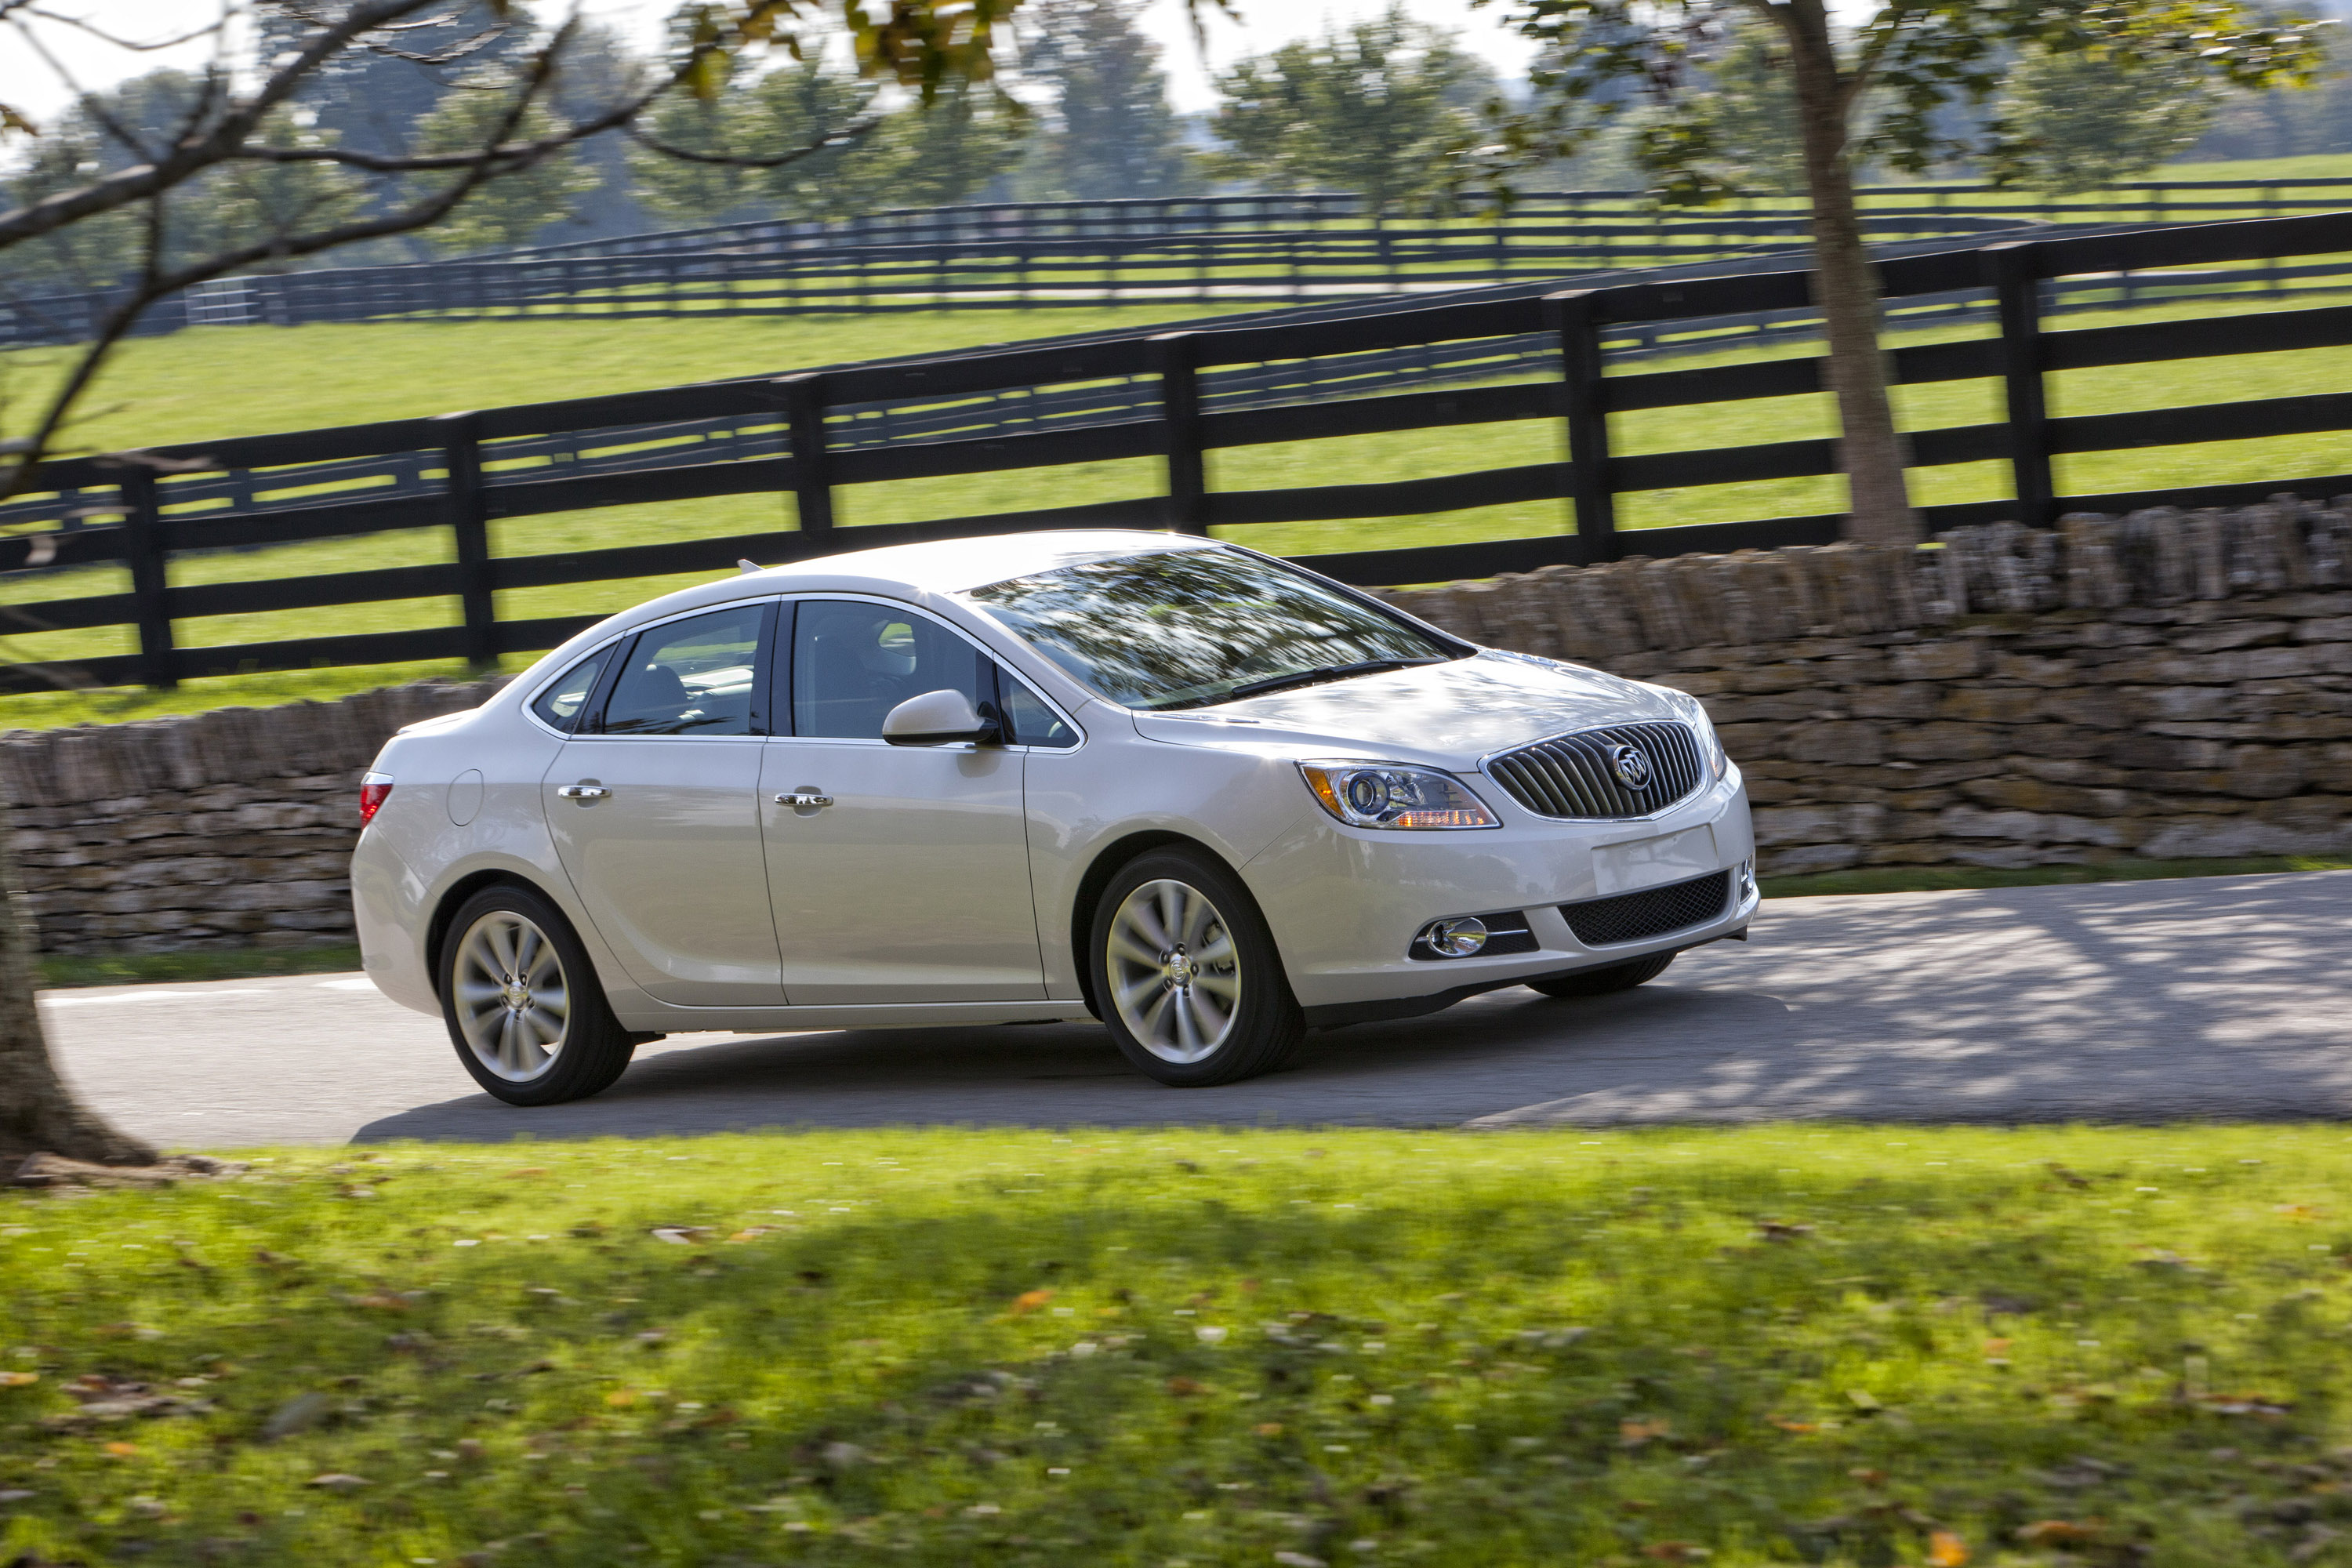 turbo options n sales auto features regal buick marks